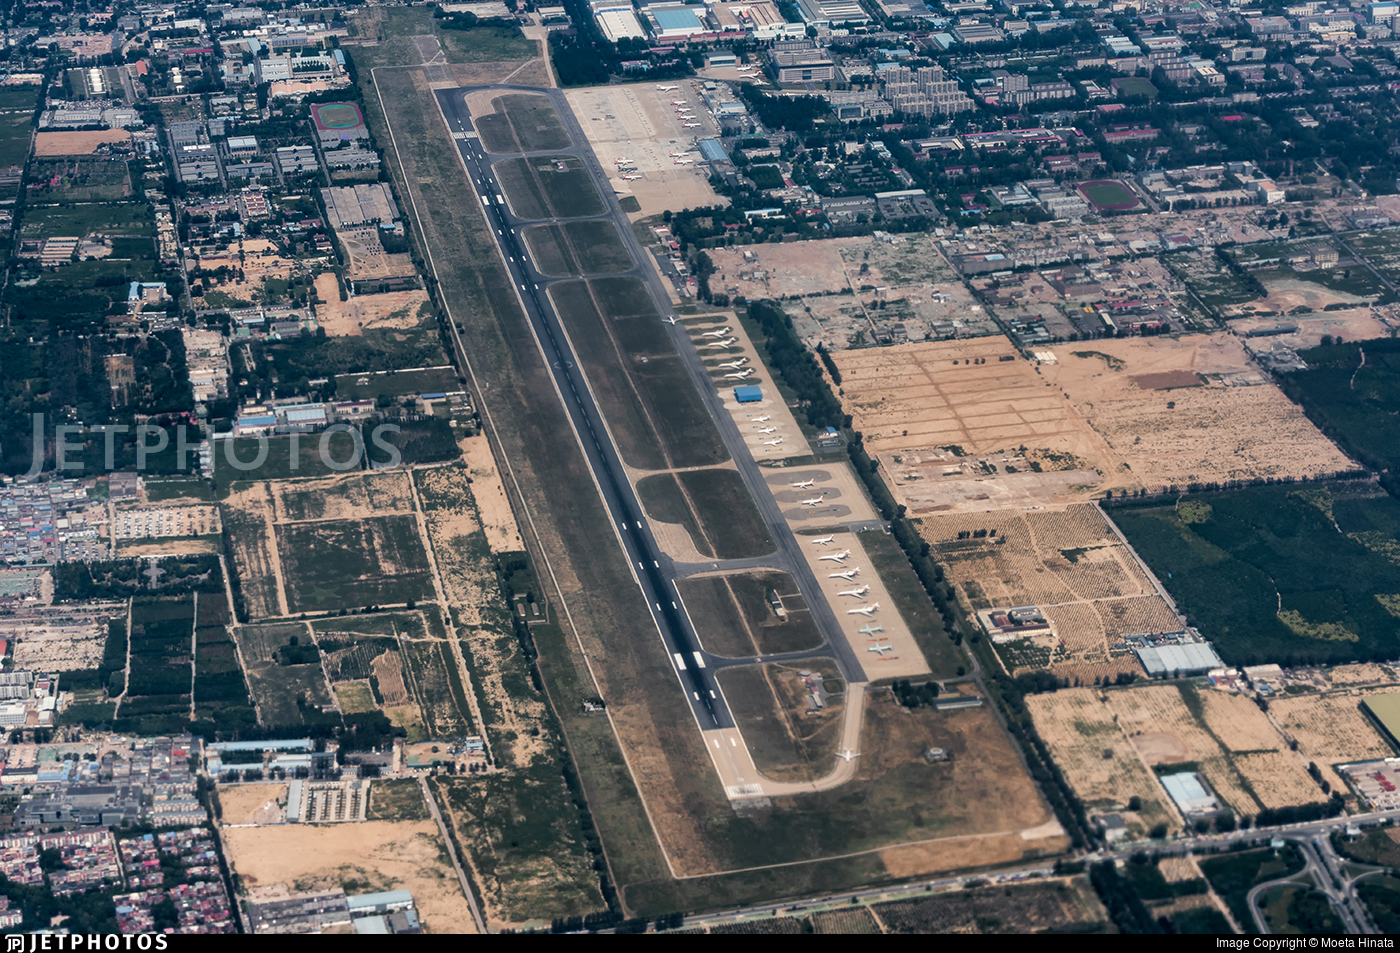 ZBNY - Airport - Airport Overview